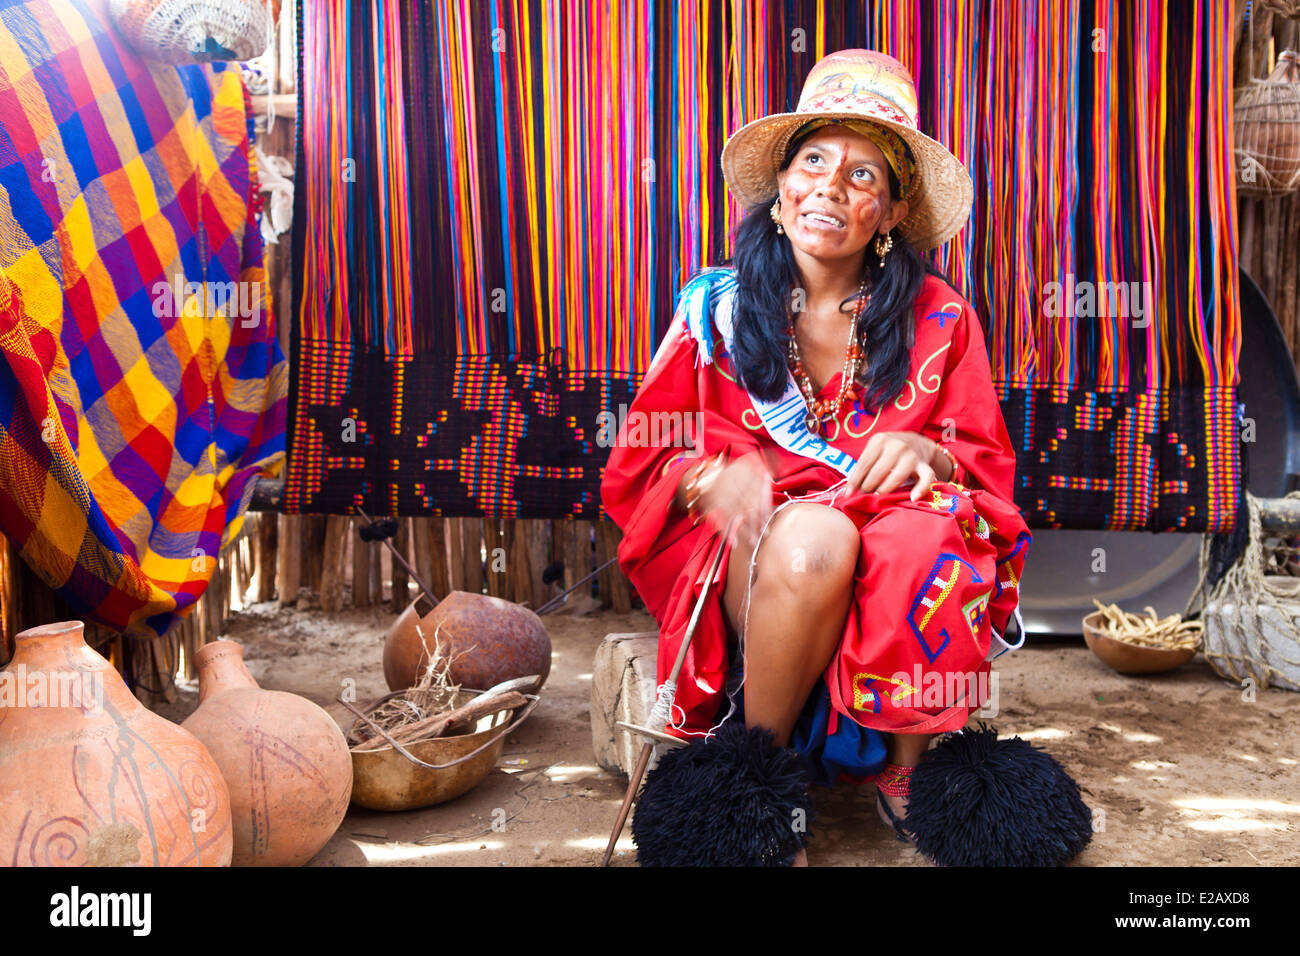 Colombia, Guajira Department, Uribia, candidate for the election of the Majayut de Oro, the golden young lady, bright - Stock Image